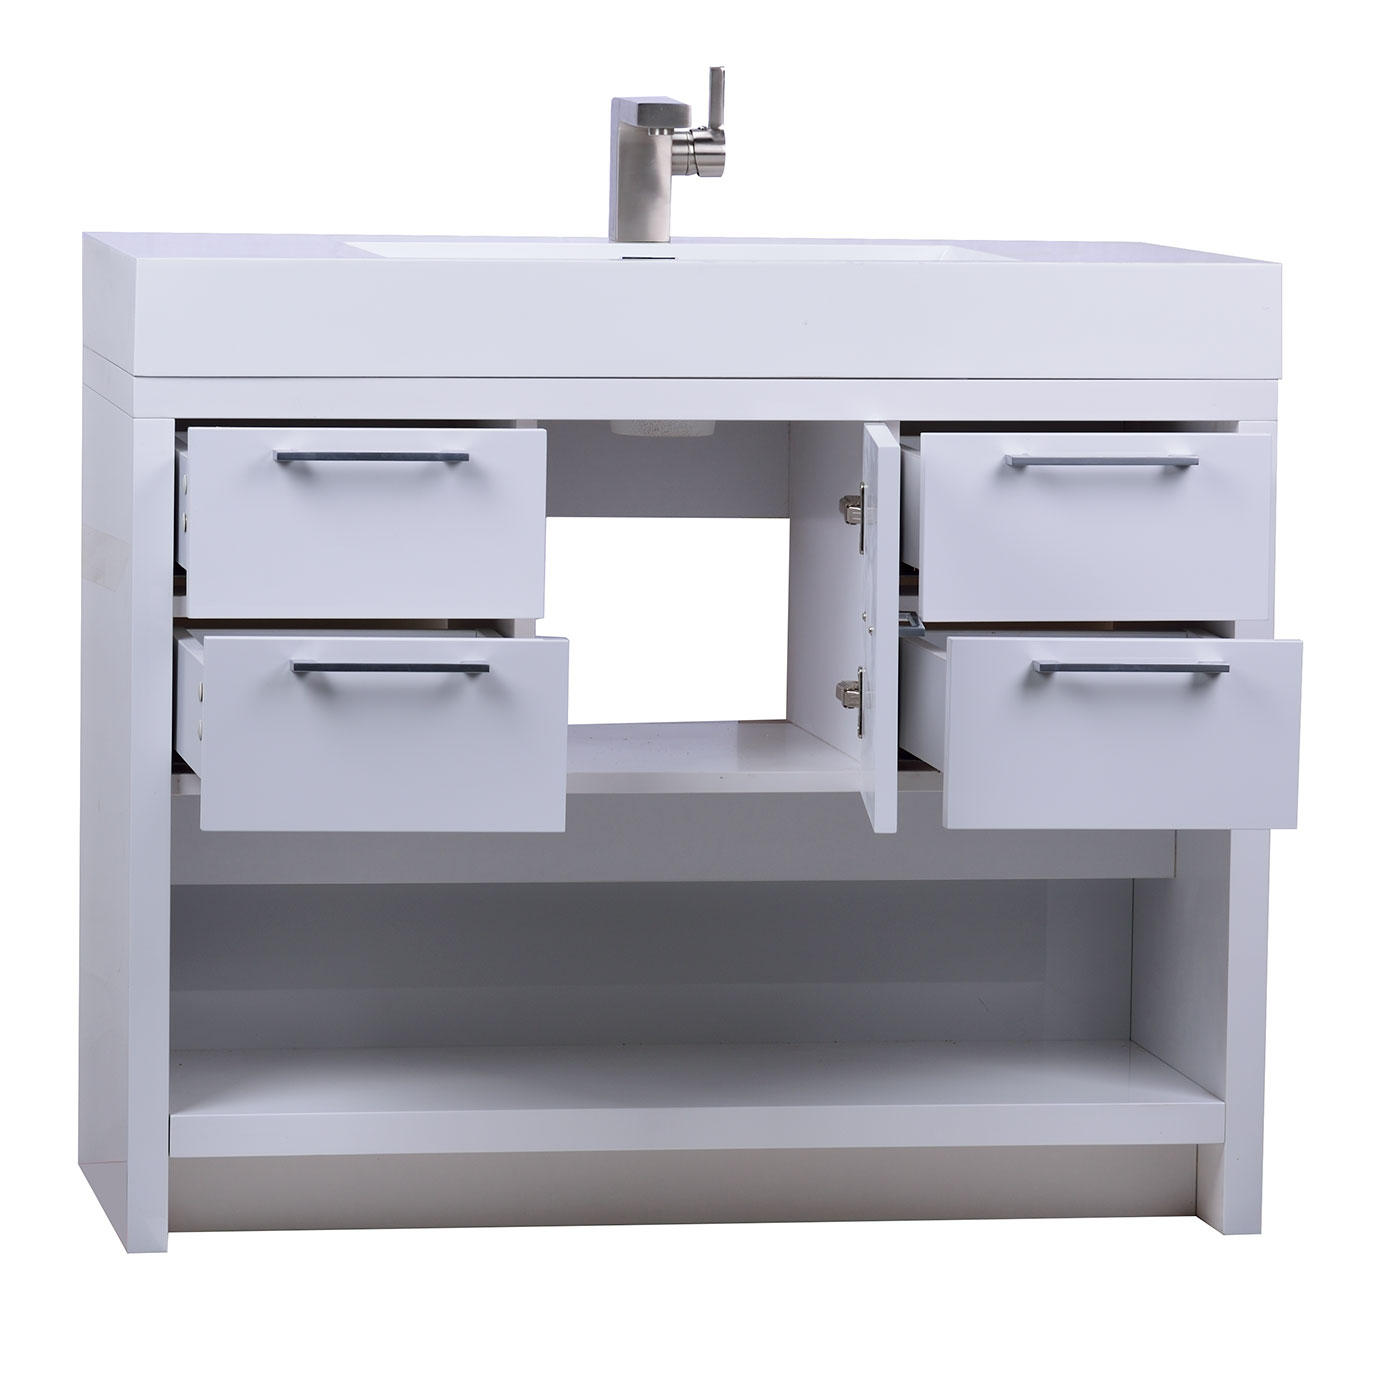 Lodi 40 Inch Modern Bathroom Vanity High Gloss Whtie Finish Tn L1000 Hgw